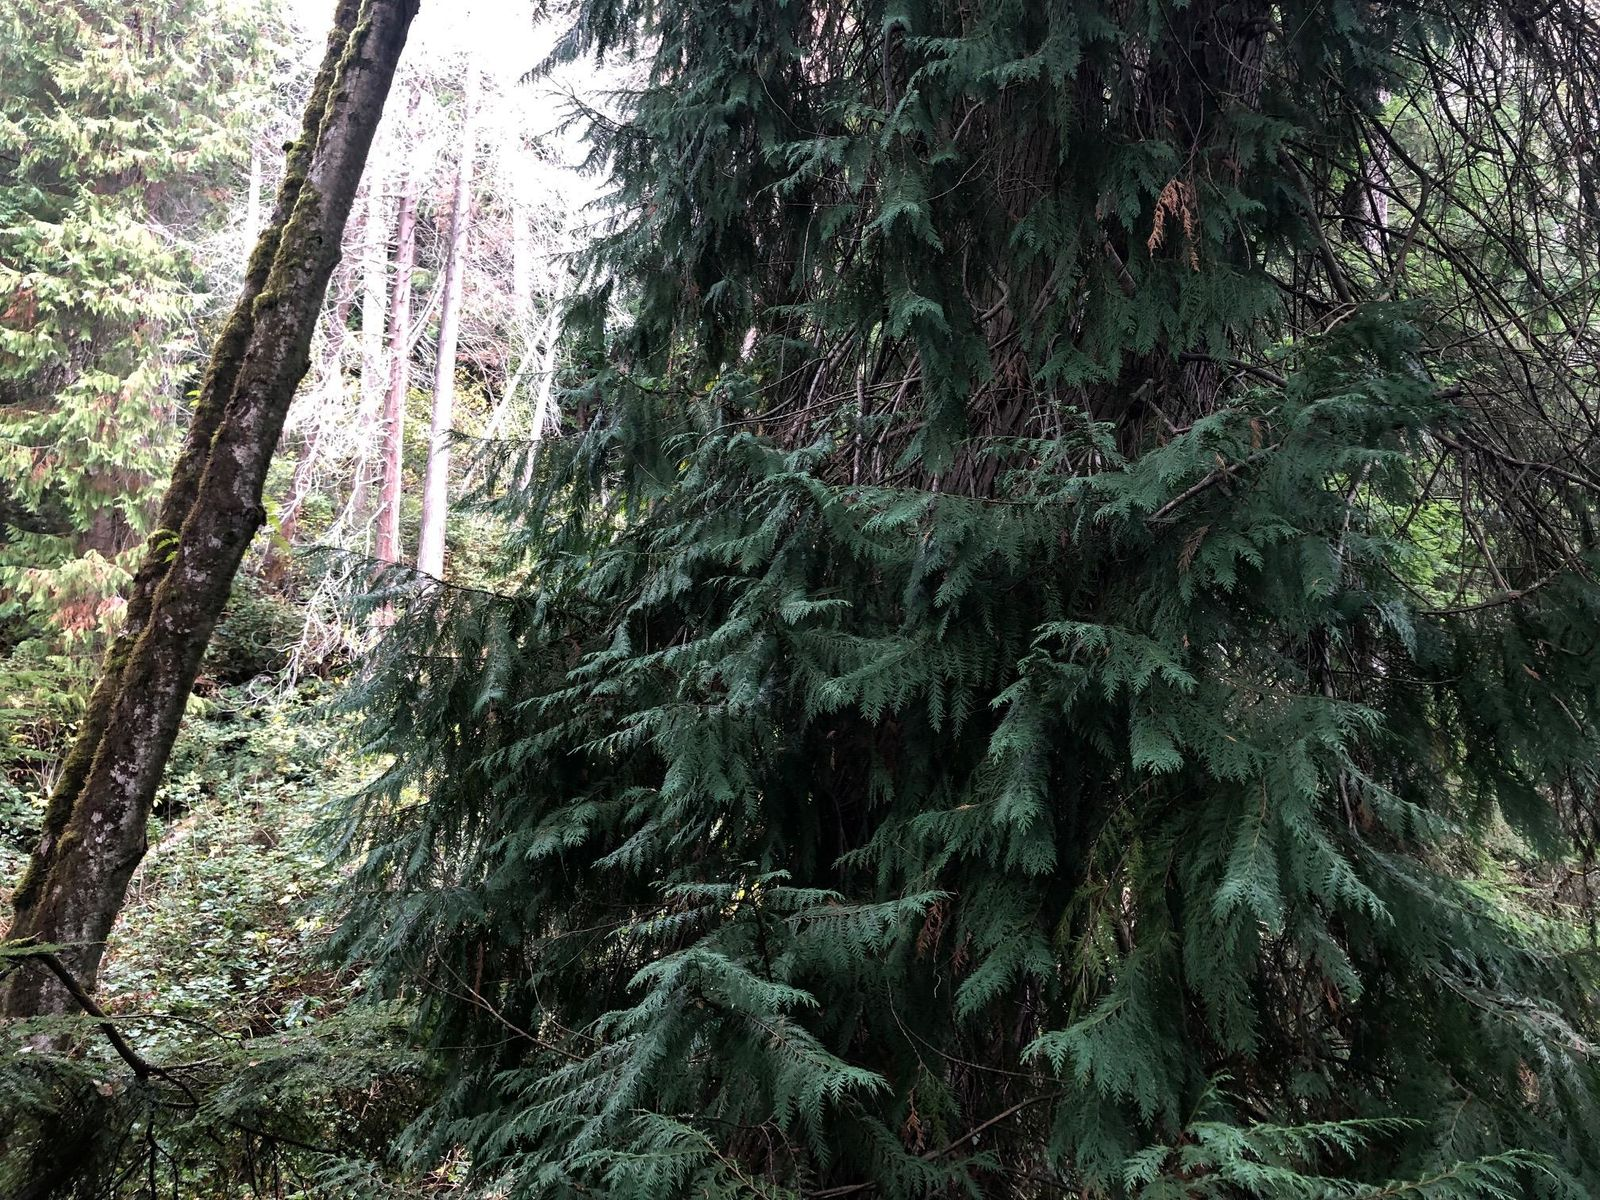 Cedar bows are being illegally cut from forests in Coos County